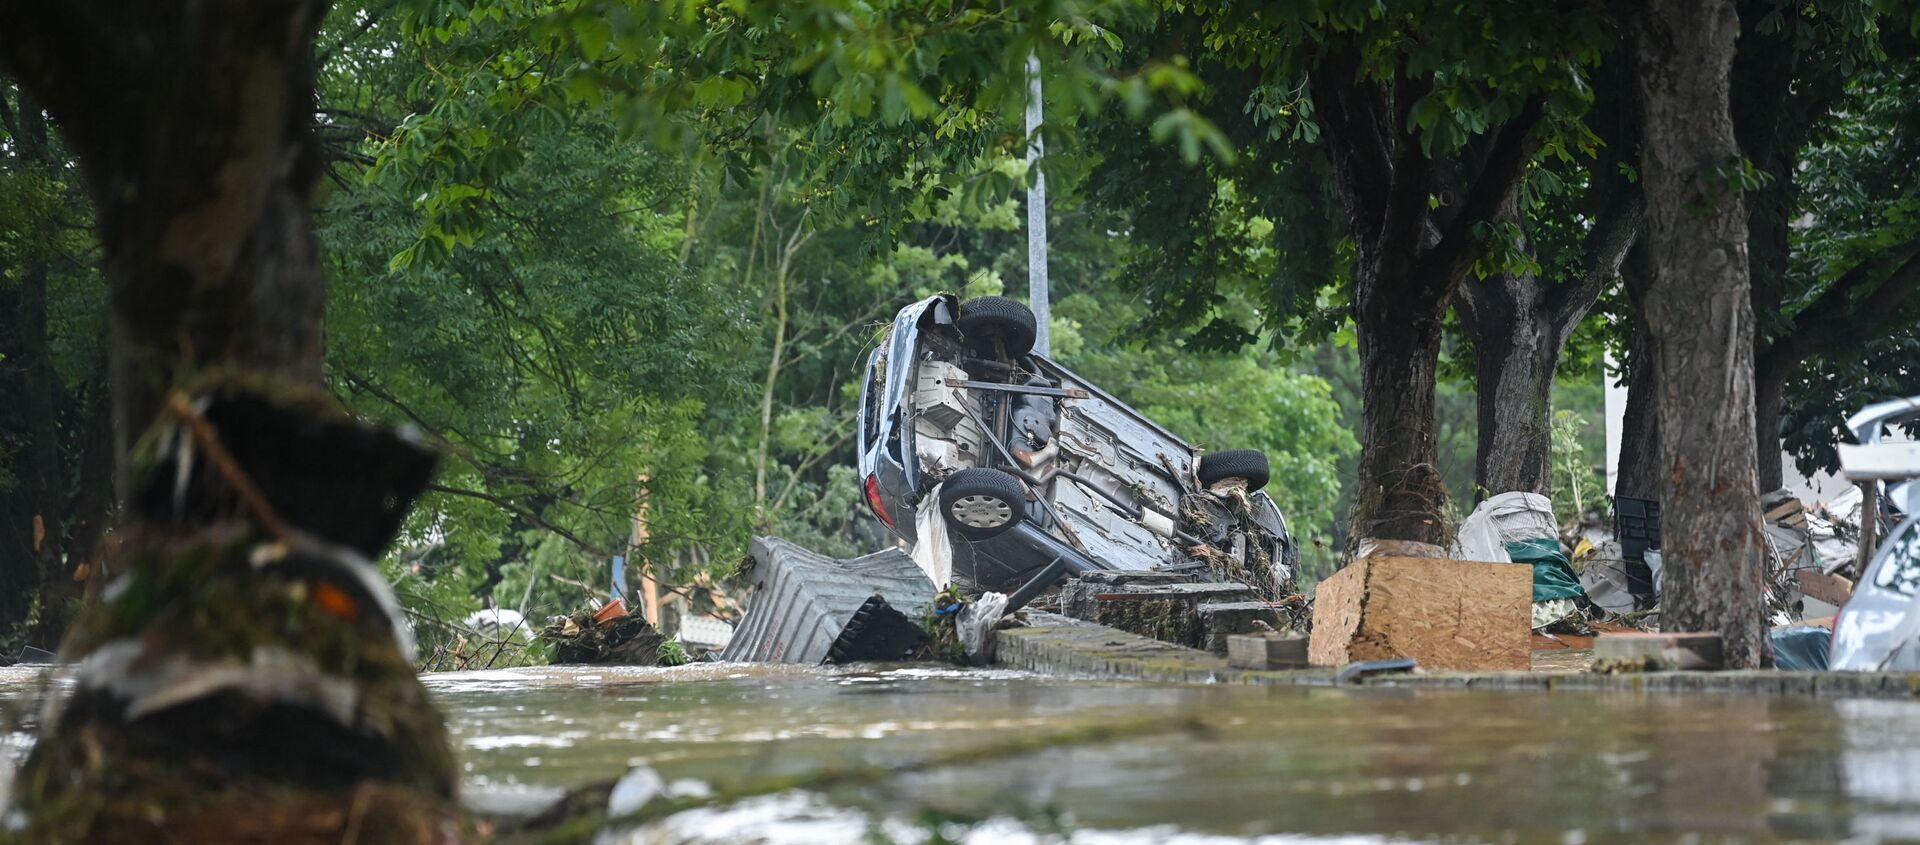 A car stands upside down near floating water in Iversheim, near Bad Muenstereifel, western Germany, on July 16, 2021, following heavy rains and floods. - The death toll from devastating floods in Europe soared to at least 126 on July 16, most in western Germany where emergency responders were frantically searching for missing people. - Sputnik International, 1920, 16.07.2021